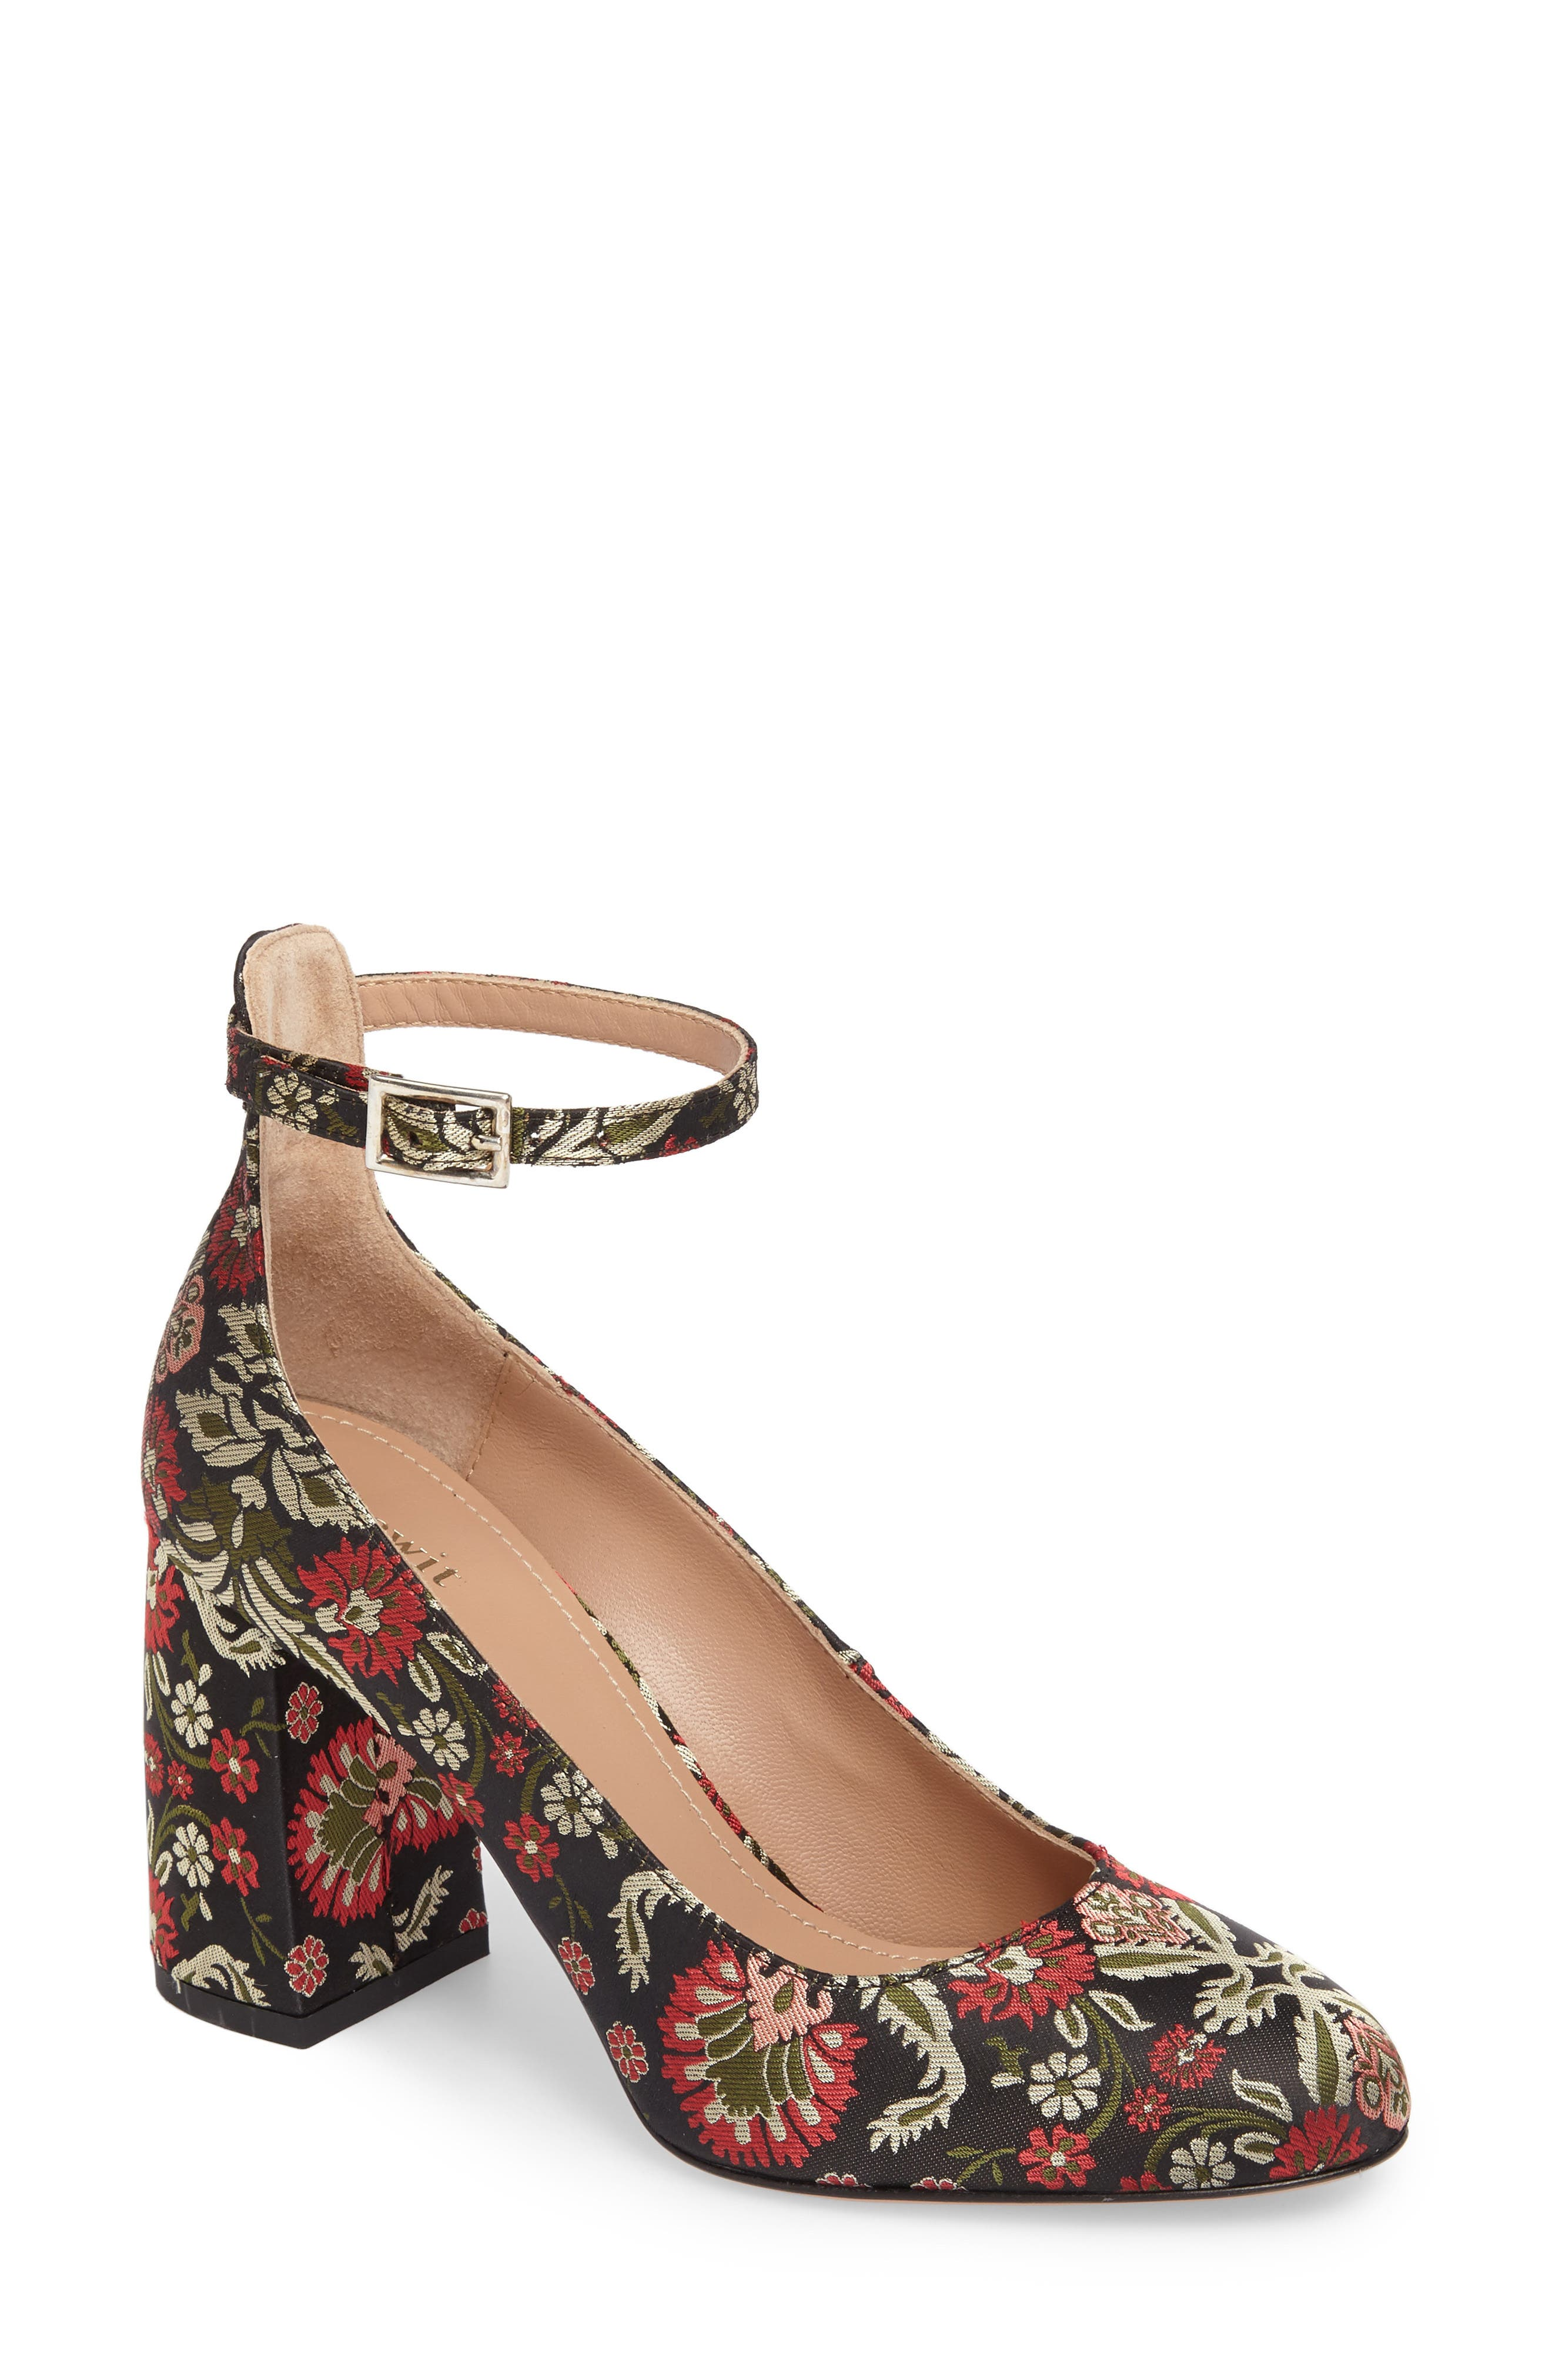 Emilia Ankle Strap Pump,                             Main thumbnail 1, color,                             Red/ Green Fabric